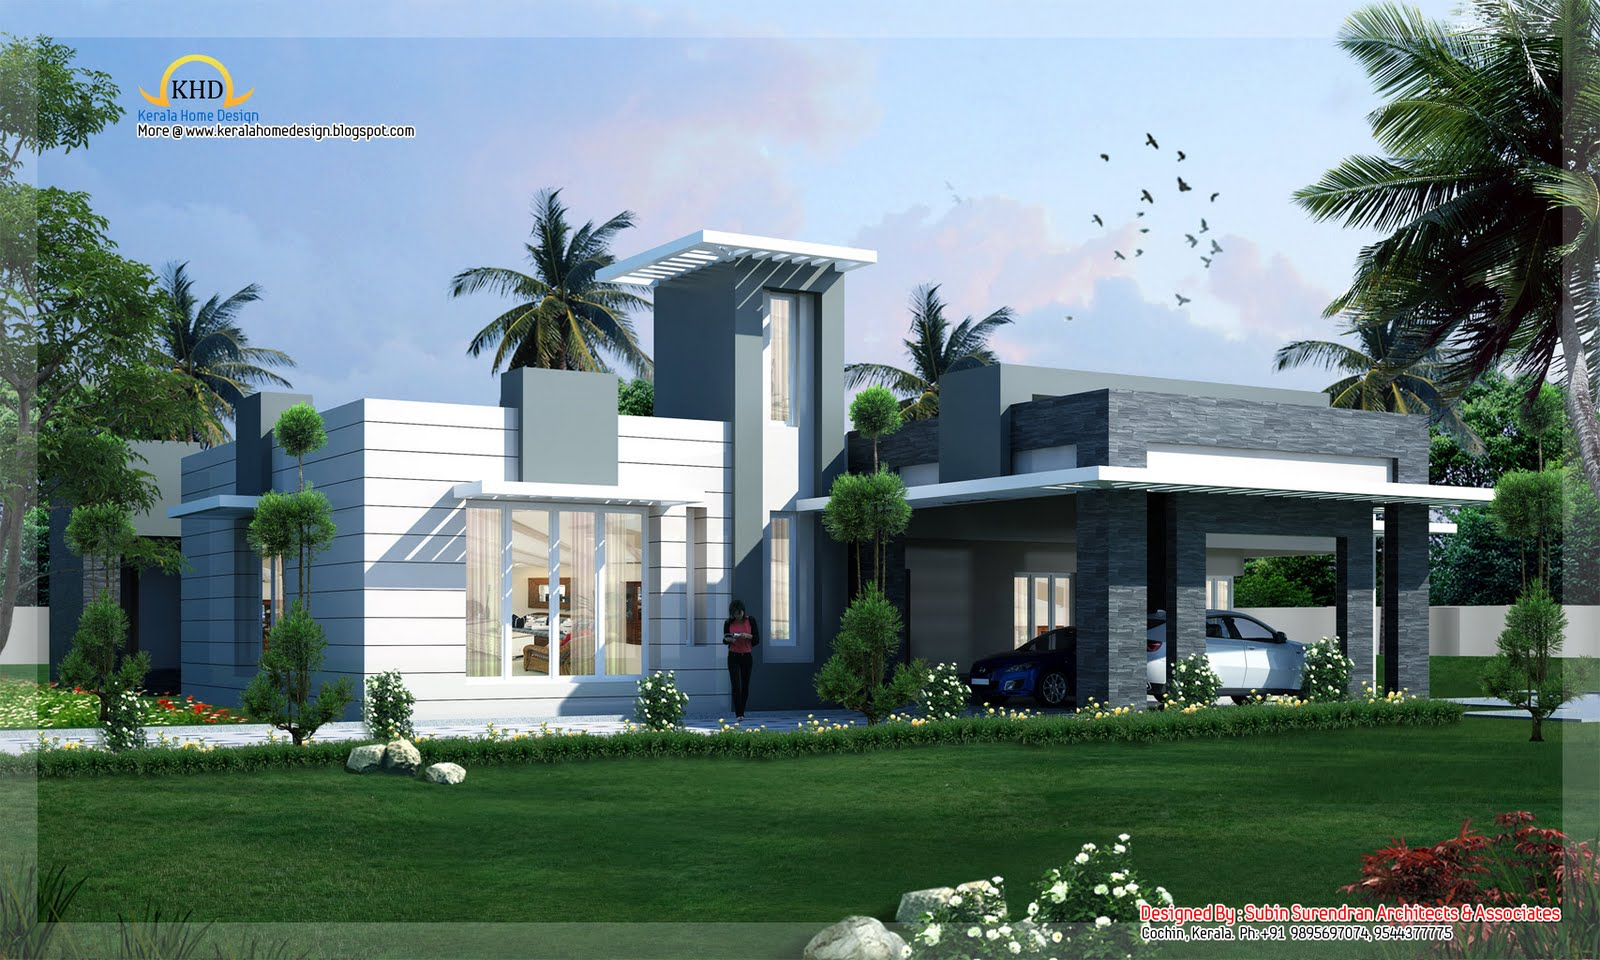 Contemporary Home Design   418 Sq M (4500 Sq. Ft)   January 2012